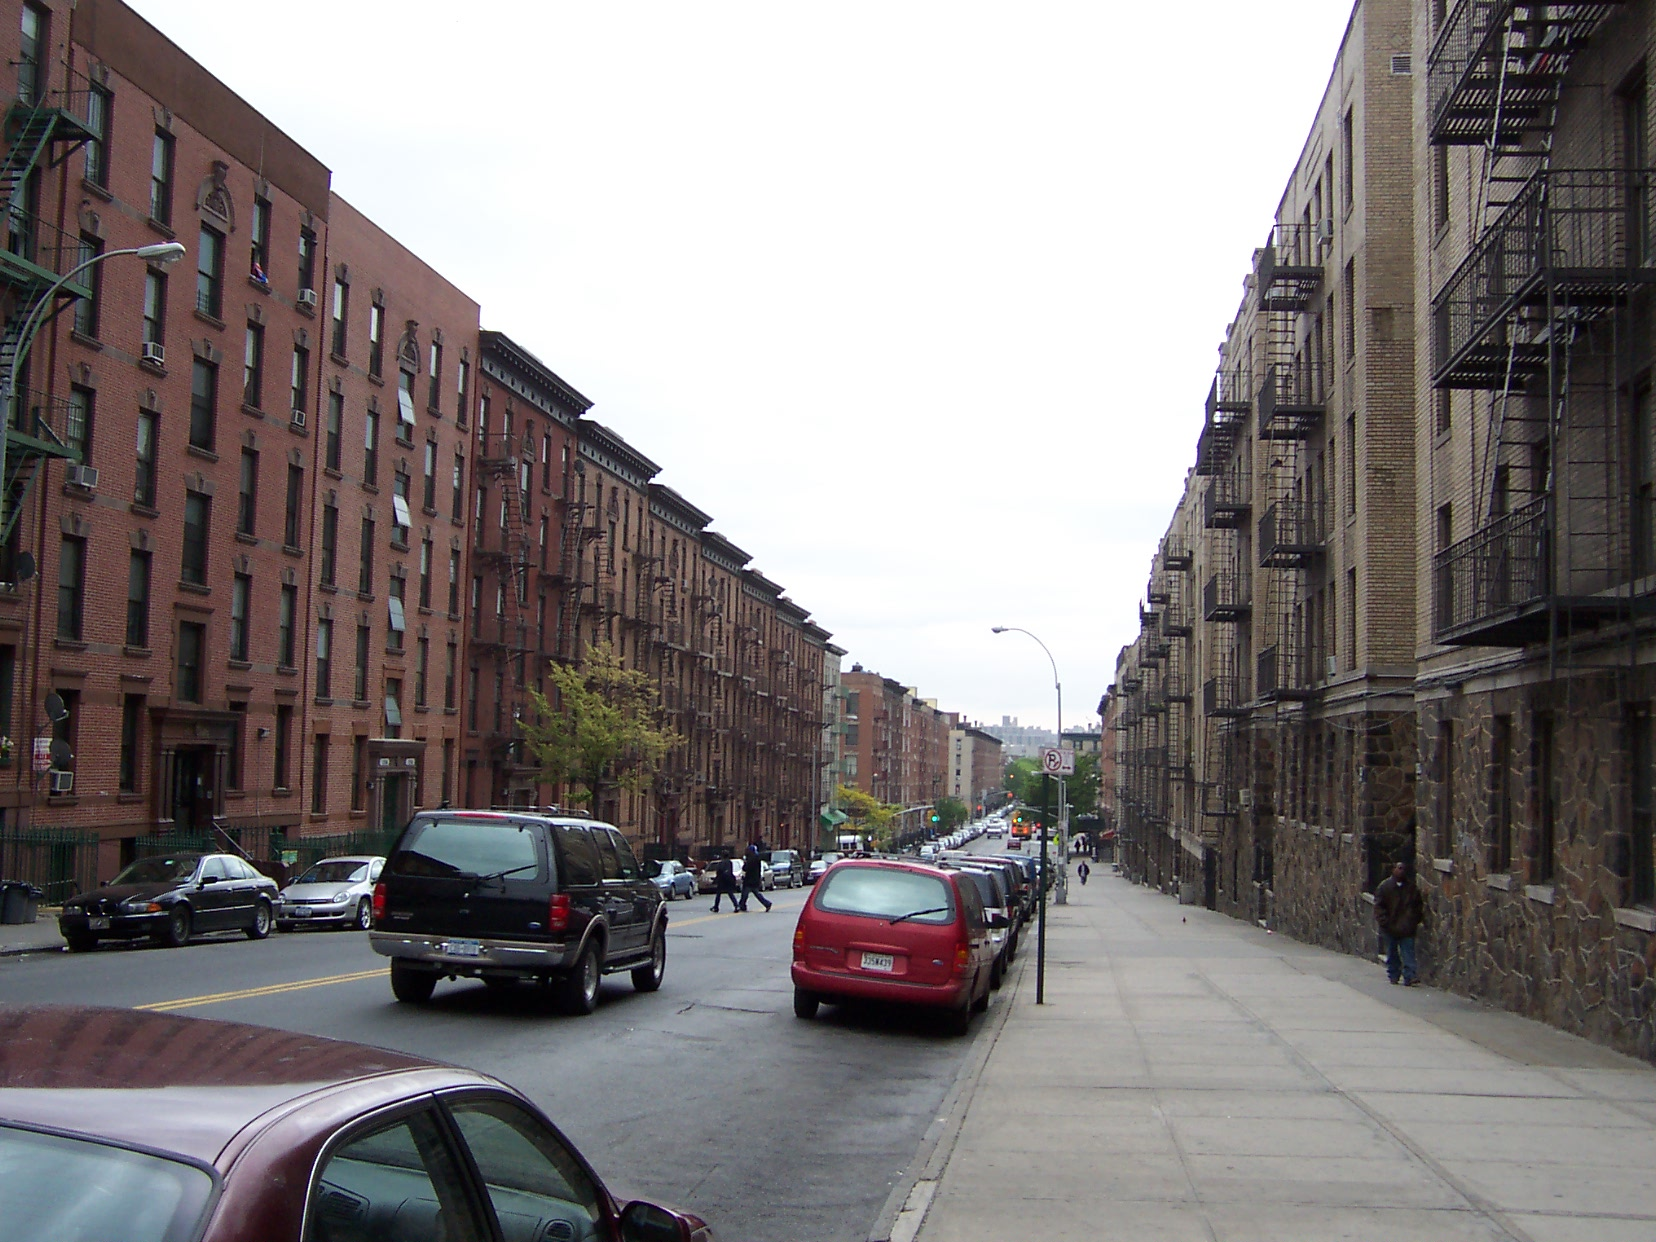 Streetscape in South Bronx